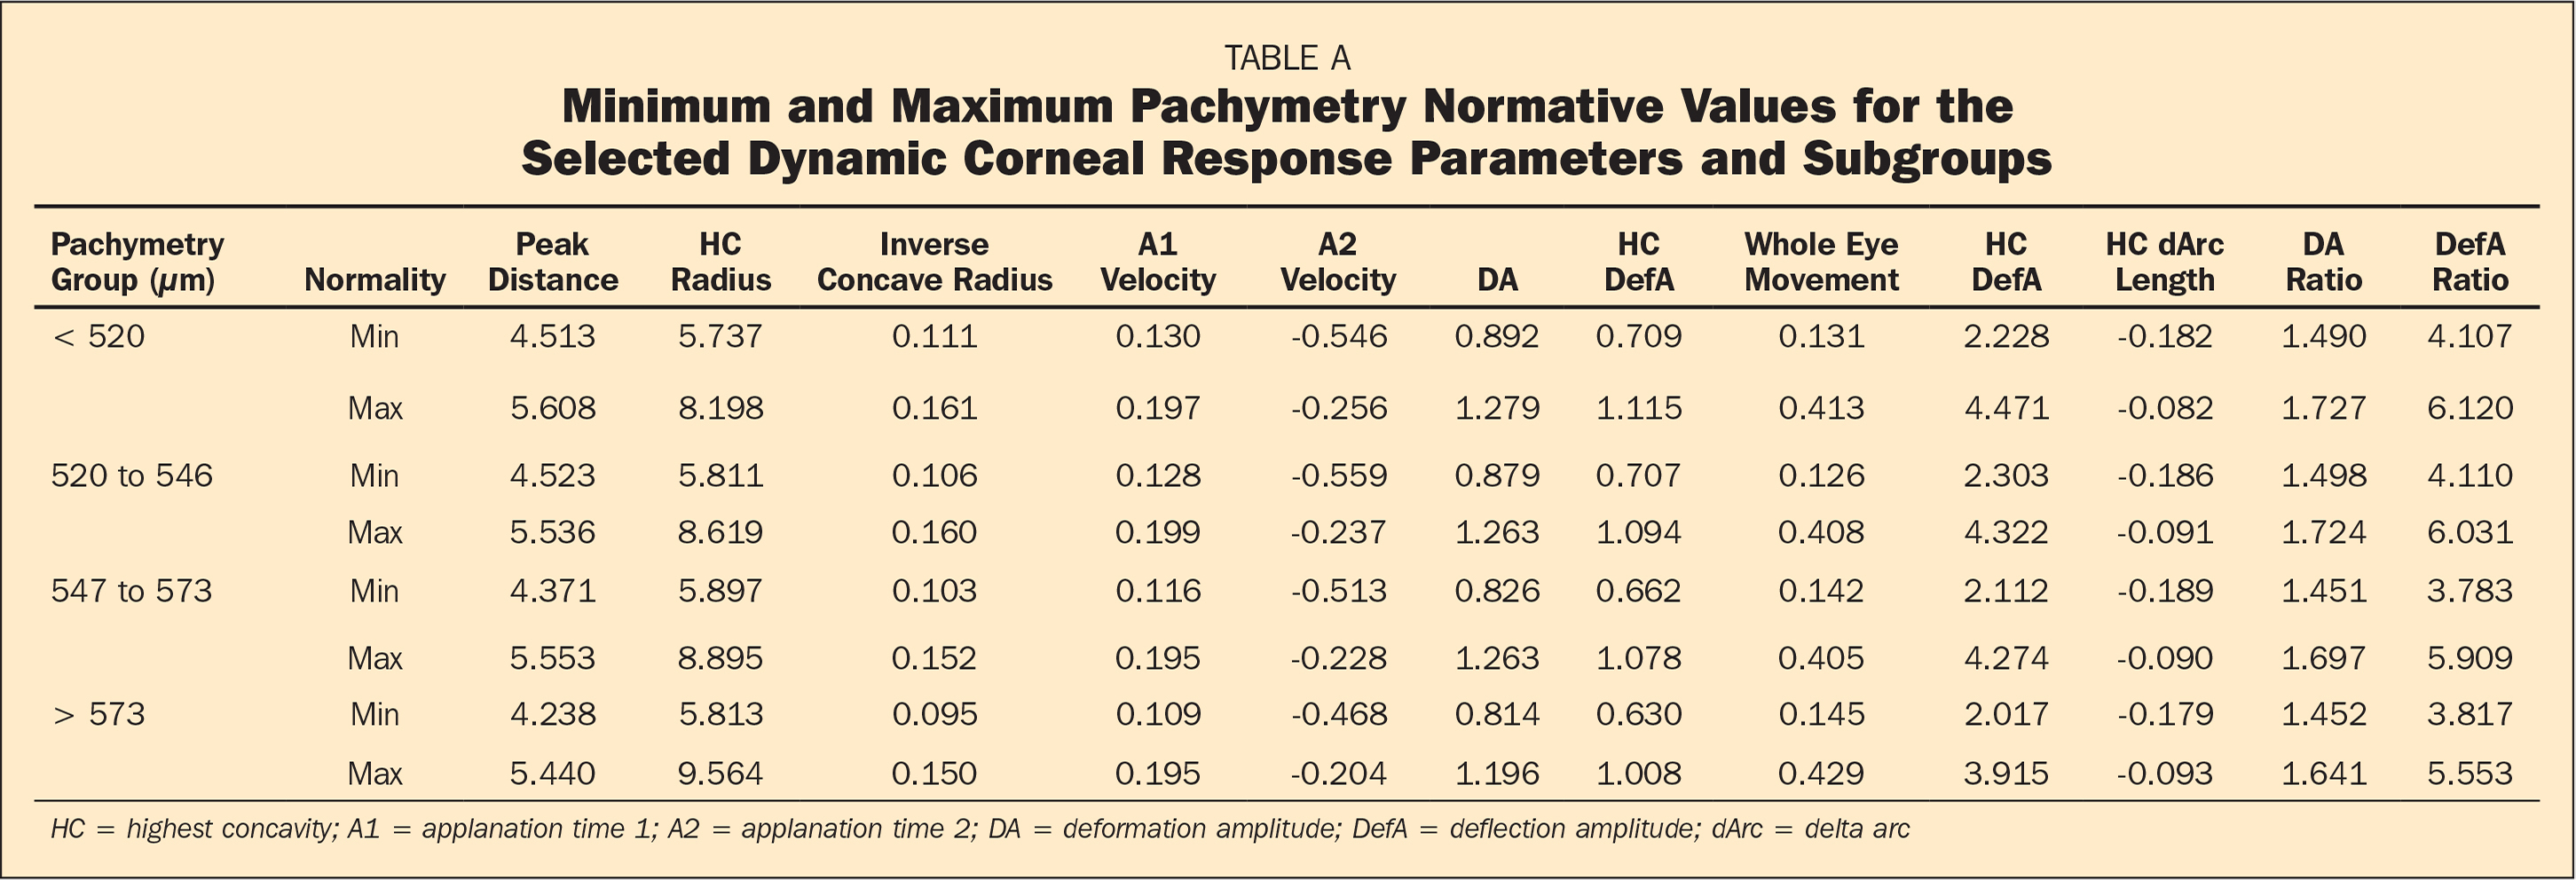 �A;Minimum and Maximum Pachymetry Normative Values for the Selected Dynamic Corneal Response Parameters and Subgroups